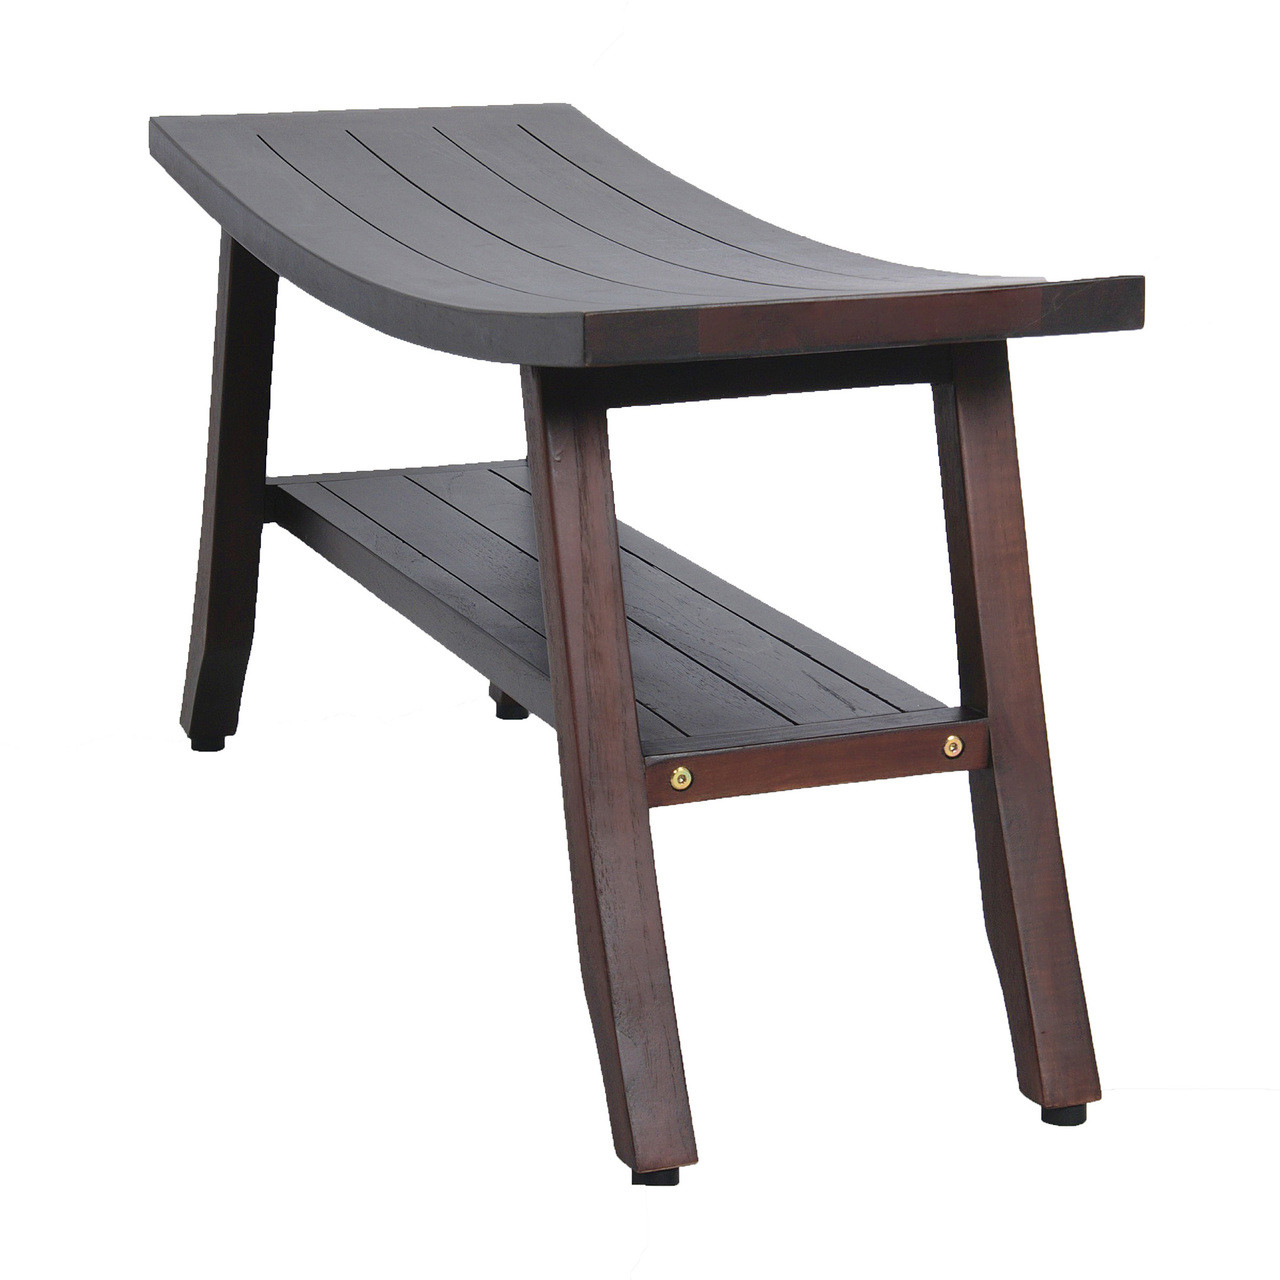 "DecoTeak Satori 34"" Teak Wood Shower Bench with Shelf in Woodland Brown Finish"